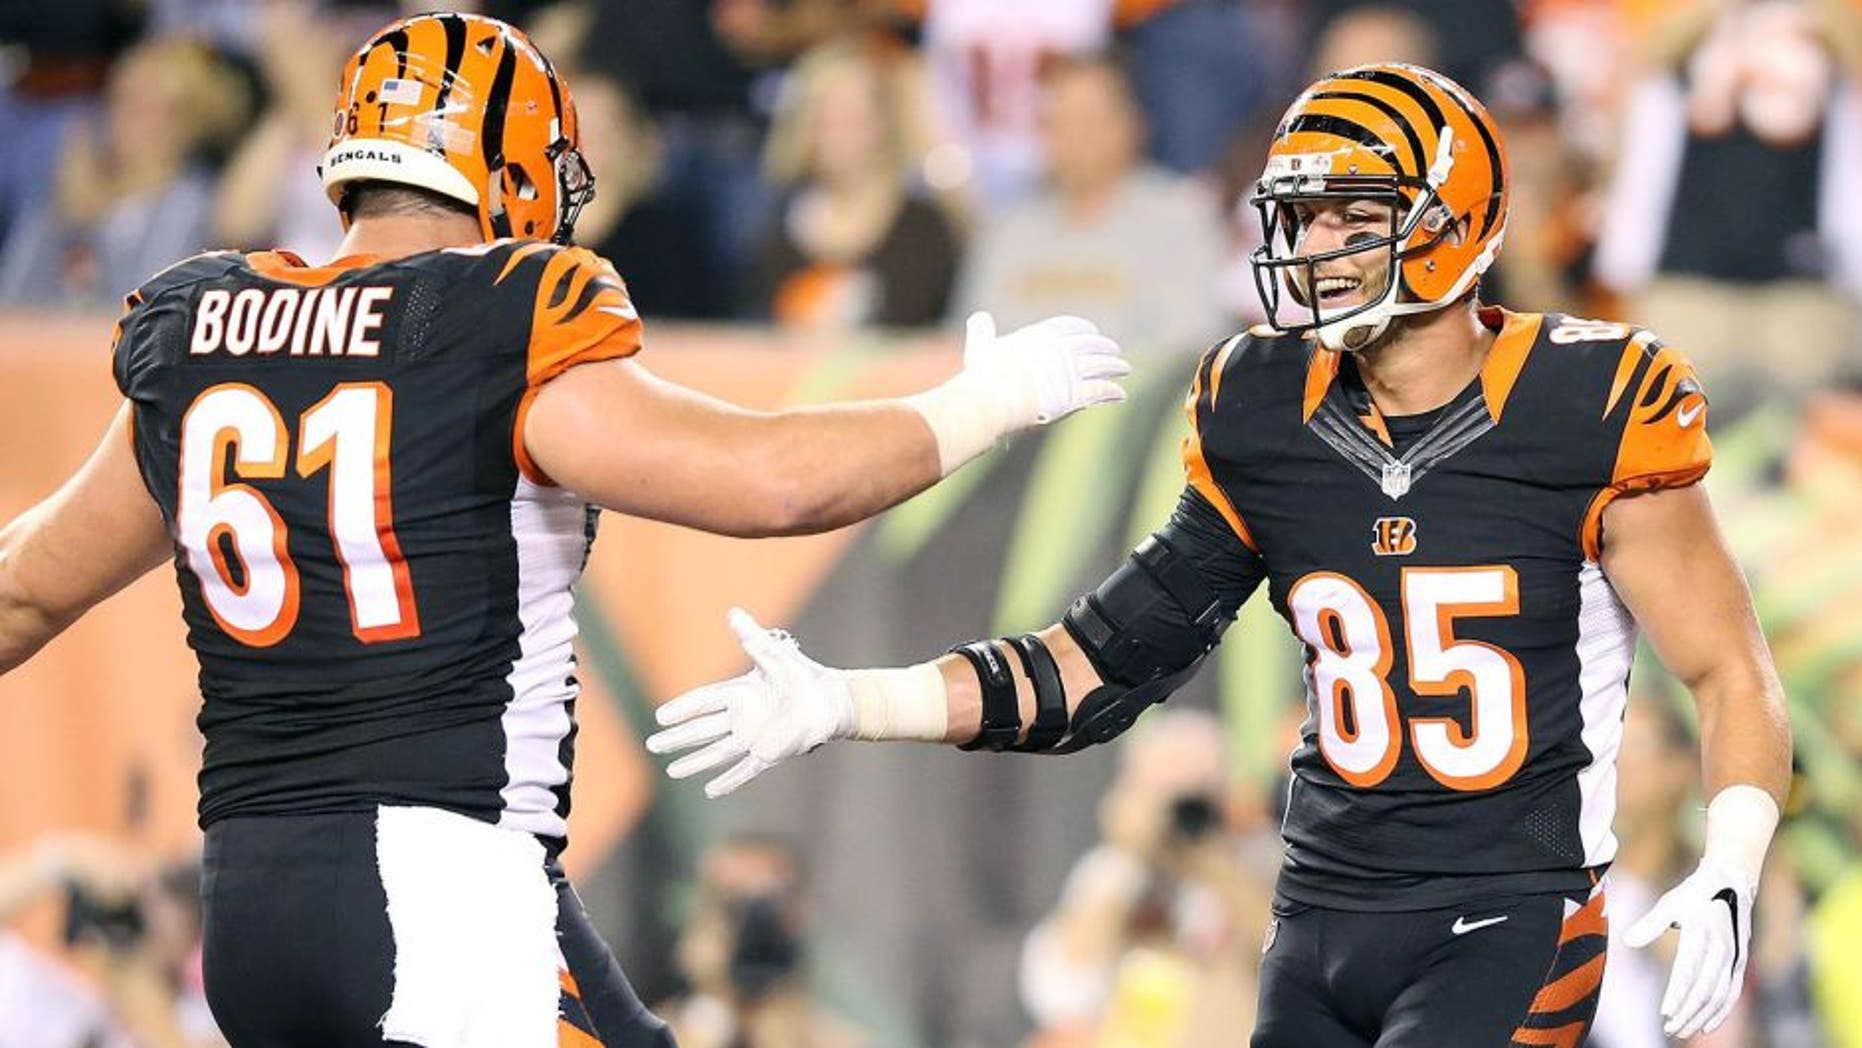 CINCINNATI, OH - NOVEMBER 5: Tyler Eifert #85 of the Cincinnati Bengals is congratulated by Russell Bodine #61 of the Cincinnati Bengals after scoring a touchdown during the second quarter of the game against the Cleveland Browns at Paul Brown Stadium on November 5, 2015 in Cincinnati, Ohio. (Photo by Andy Lyons/Getty Images)